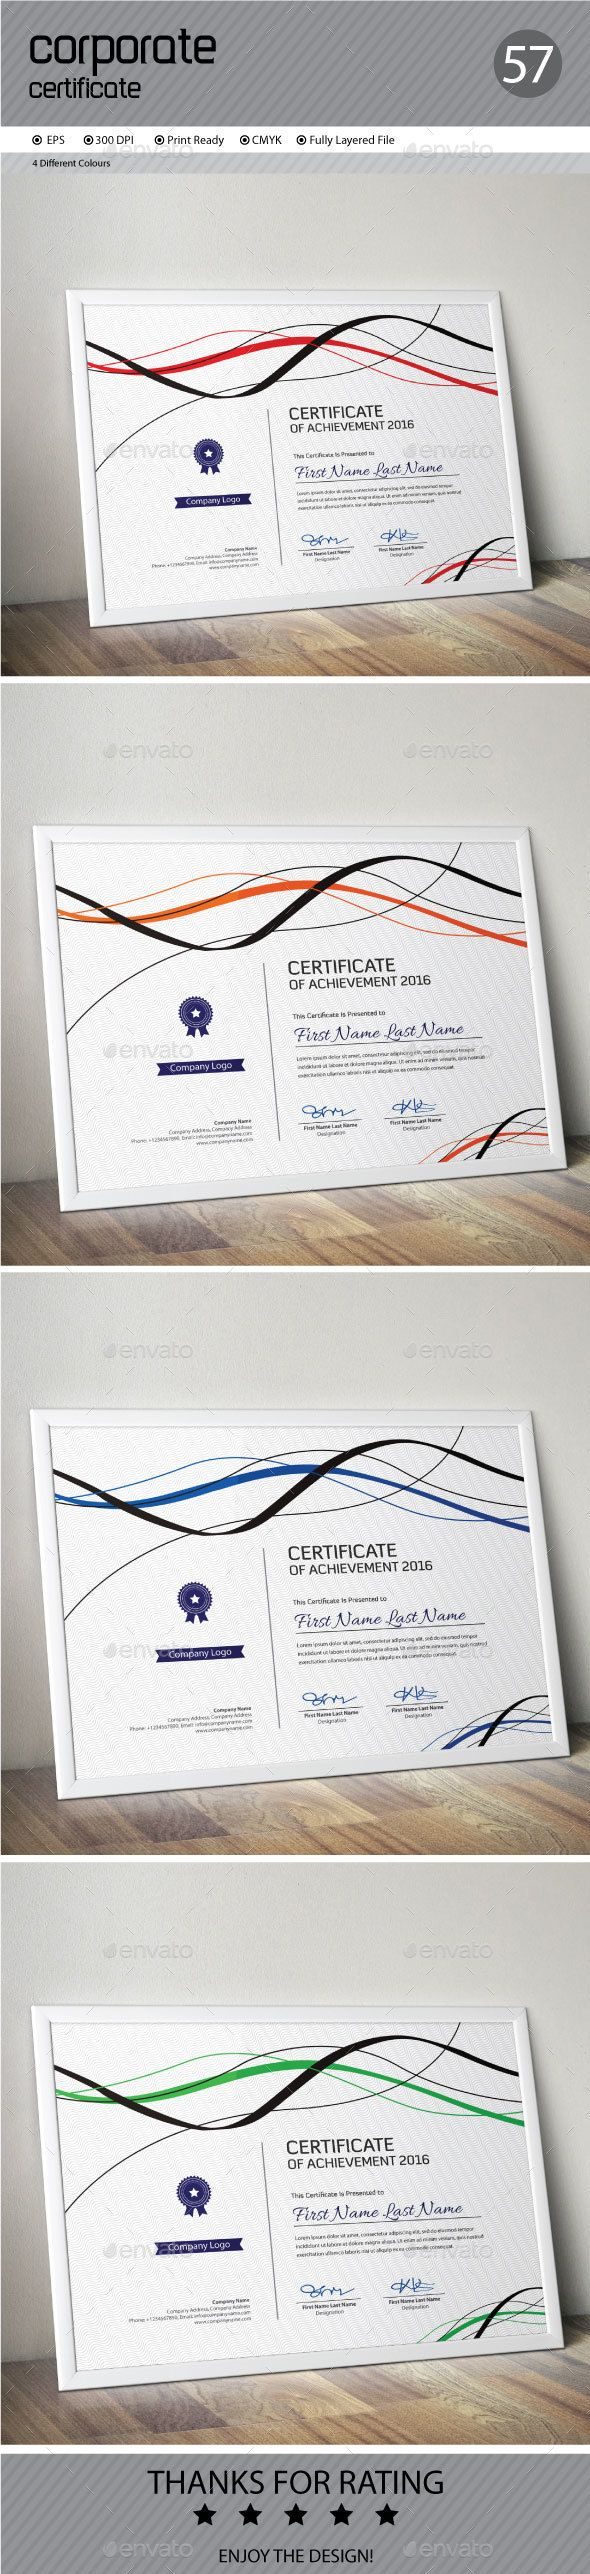 Certificate Template Vector EPS. Download here: http://graphicriver.net/item/certificate/14730462?ref=ksioks